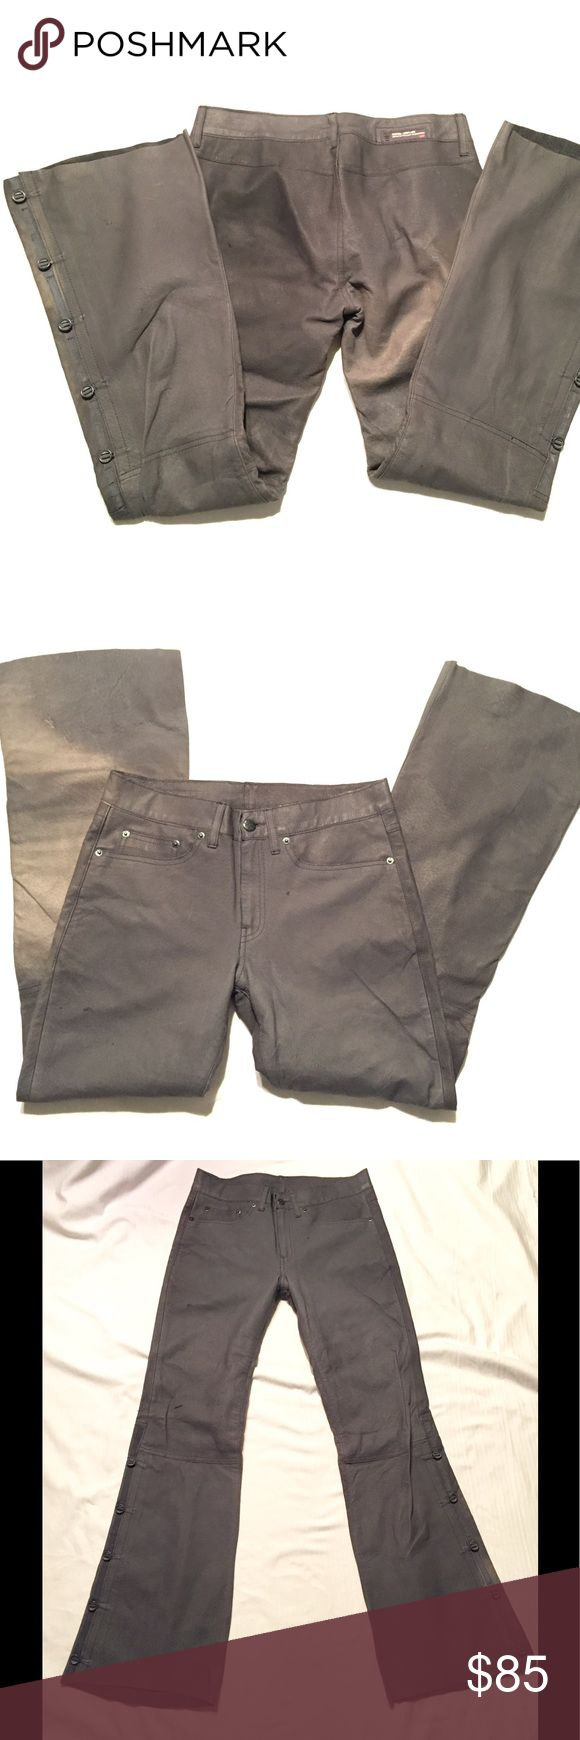 Vintage Diesel leather moto pants jeans Small NWOT NWOT Please pay attention to measurements here. Tag is 26, but it's Diesel. Never worn, in storage for almost 20 years! Thick soft gray leather with distressed destroyed finish, amazing buttons and details. Waist is 28, rise is 8.5, upper hip is 16 across (where jeans pocket area is), inseam/outseam 29/39, 20 inch leg opening. Lined in soft Floral material. Very unique and beautiful. Stored hygienically in NON sterile home. Diesel Pants Boot…